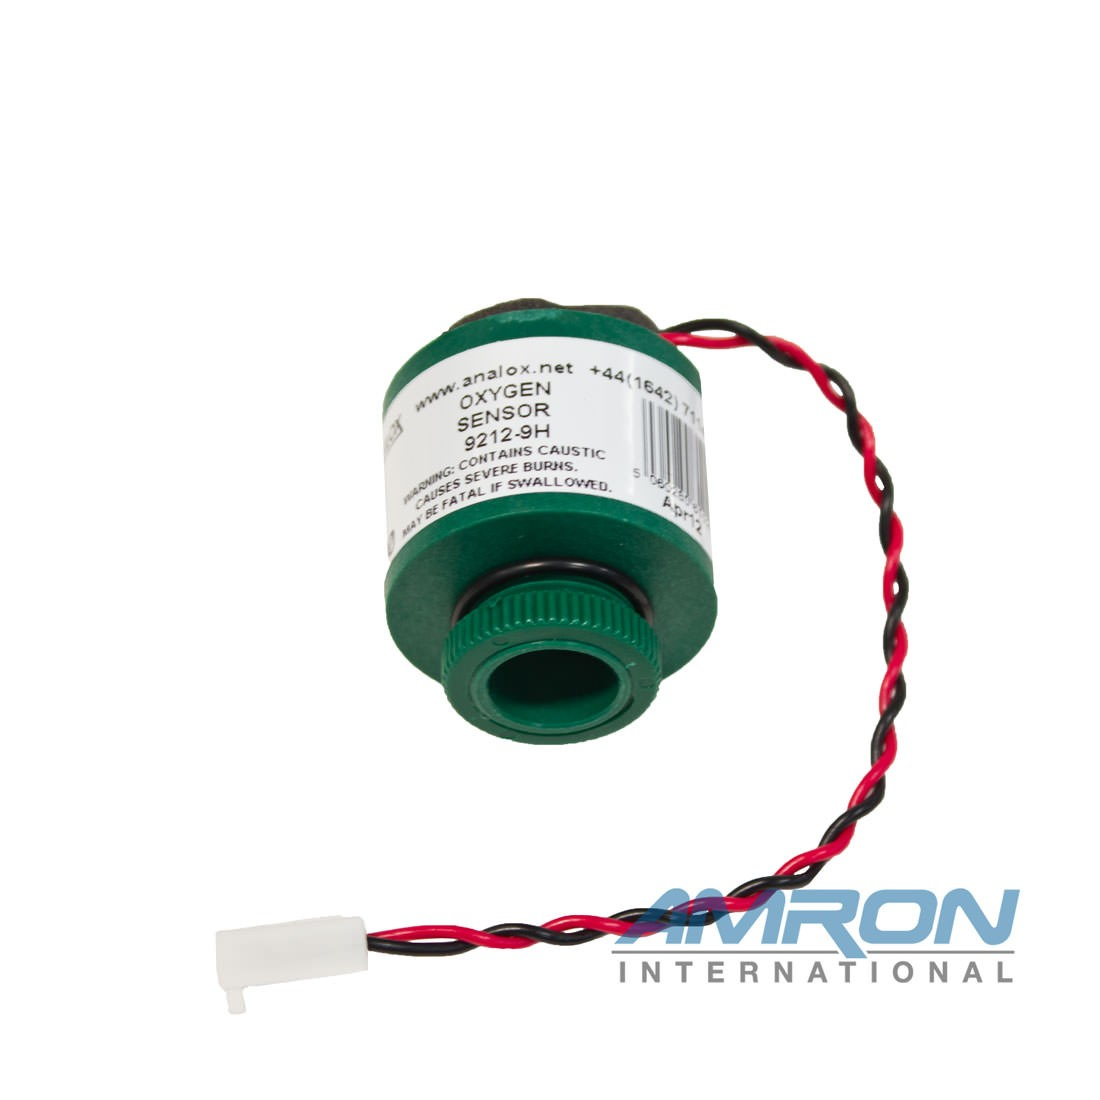 Analox Spare O2 Cell (O-2000 mBar)